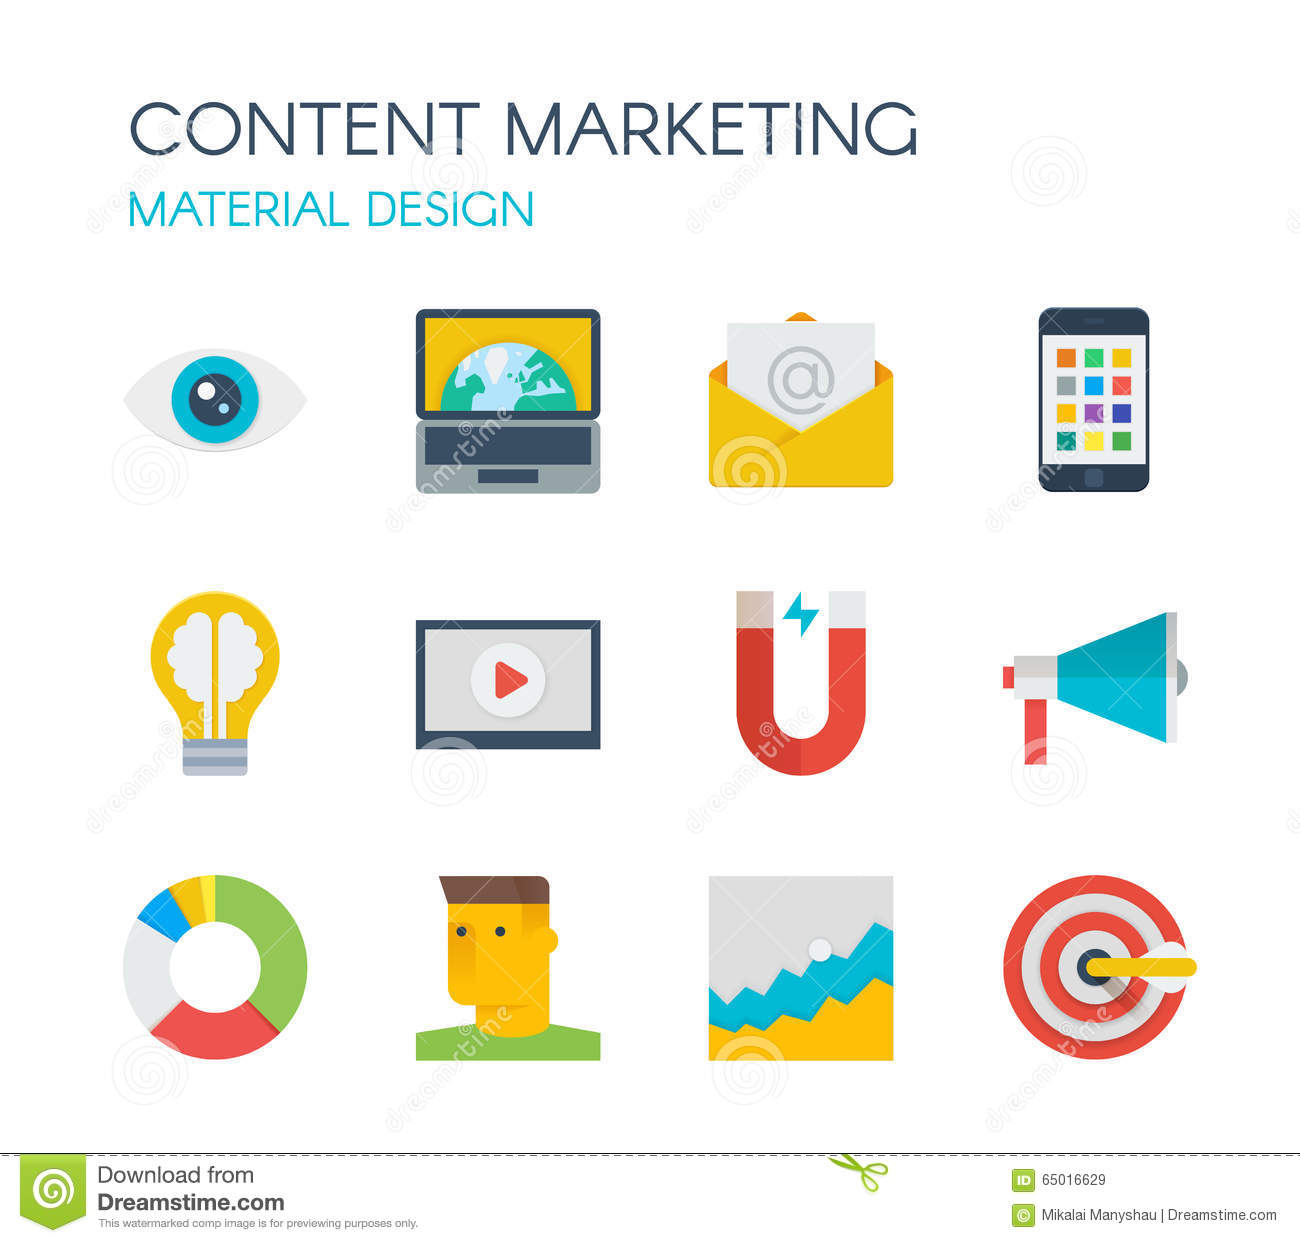 Material design content marketing icons stock image for Digital marketing materials